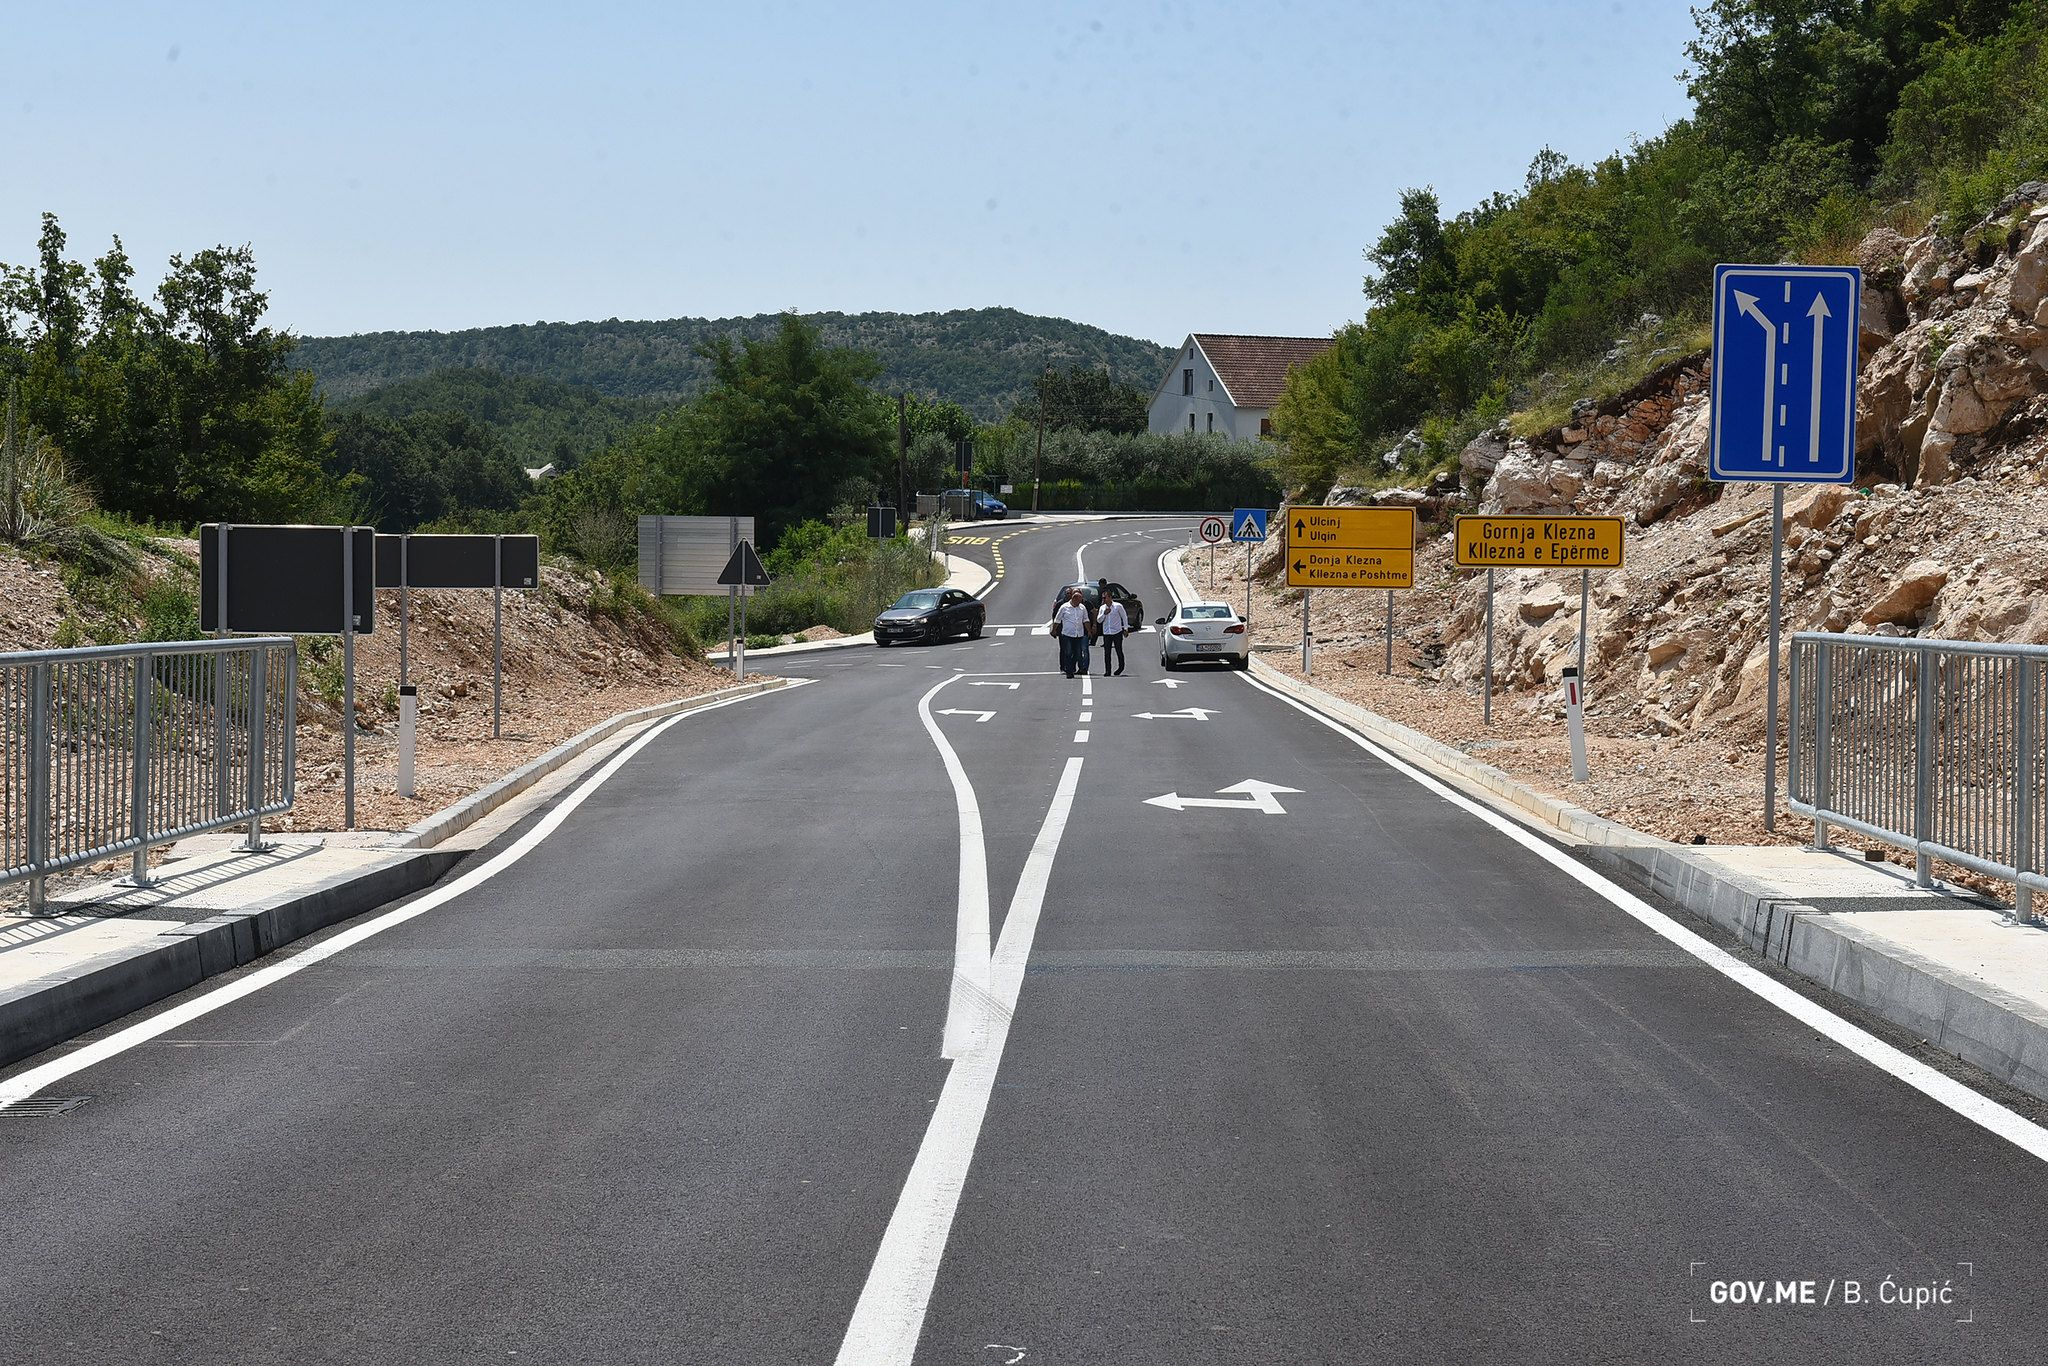 New Road from Ulcinj to Albania Opened Connecting two Countries